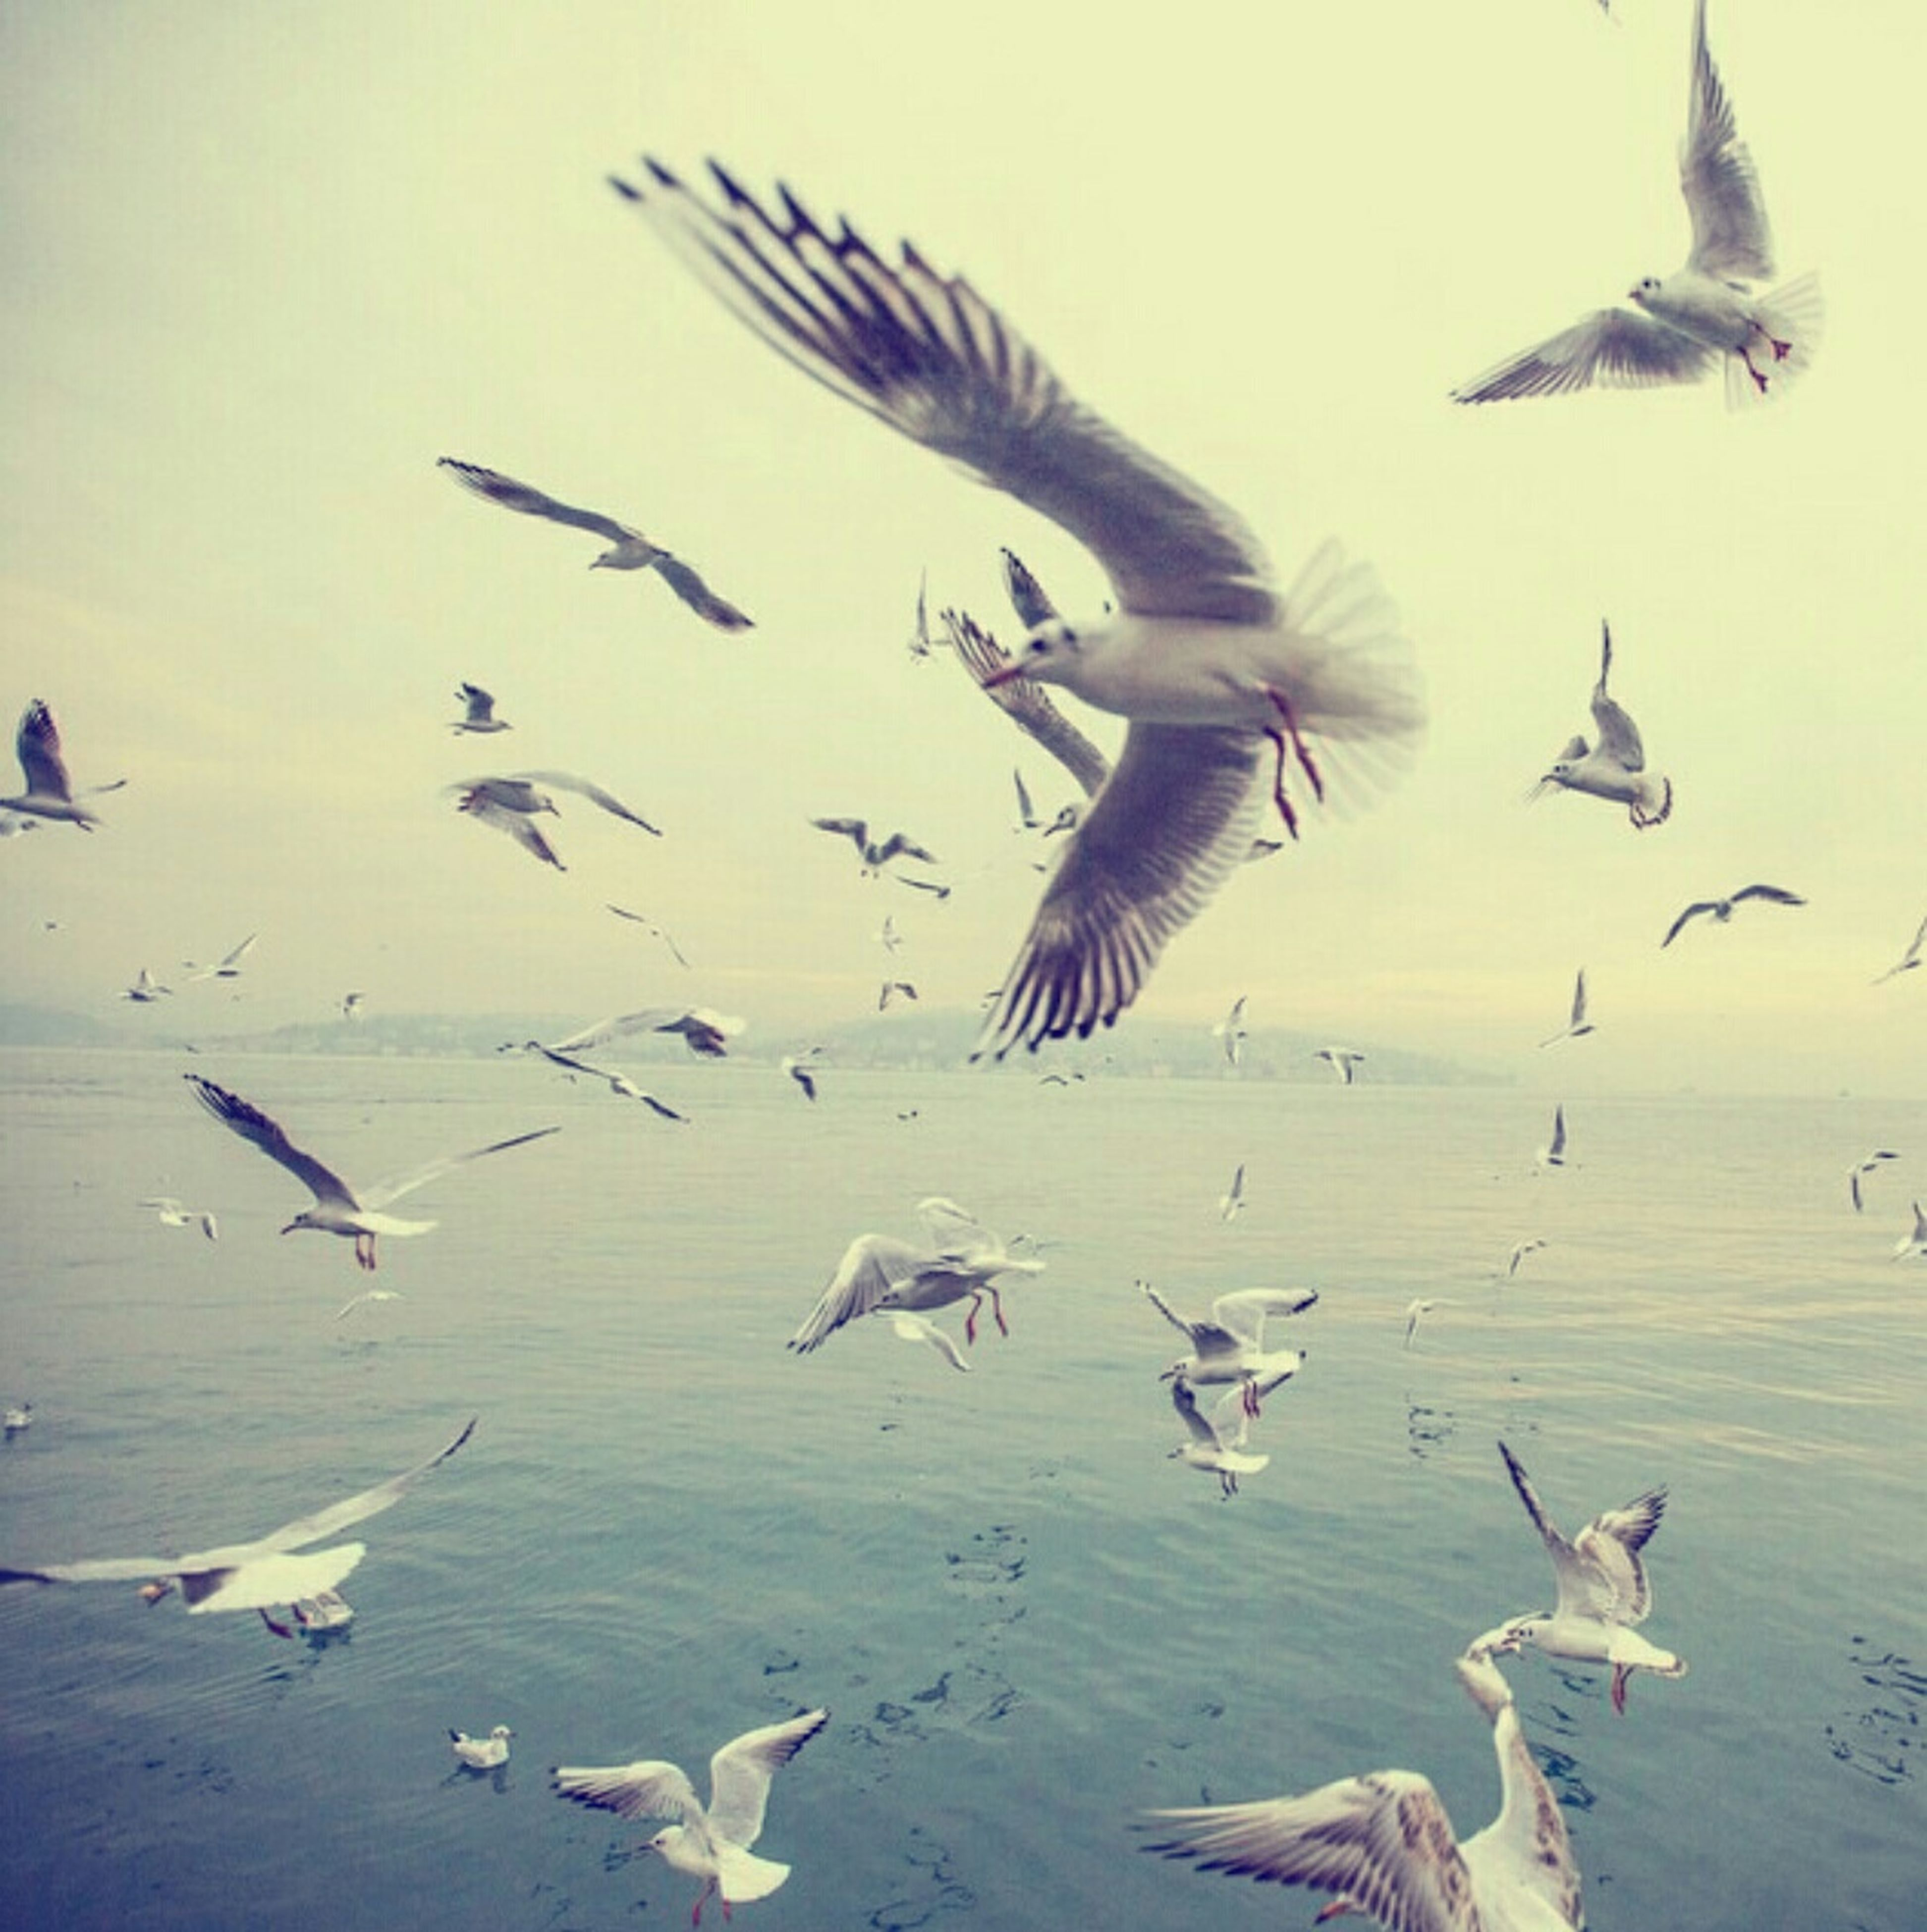 bird, animal themes, animals in the wild, wildlife, flying, flock of birds, seagull, spread wings, water, sea, nature, sky, mid-air, medium group of animals, beach, outdoors, day, beauty in nature